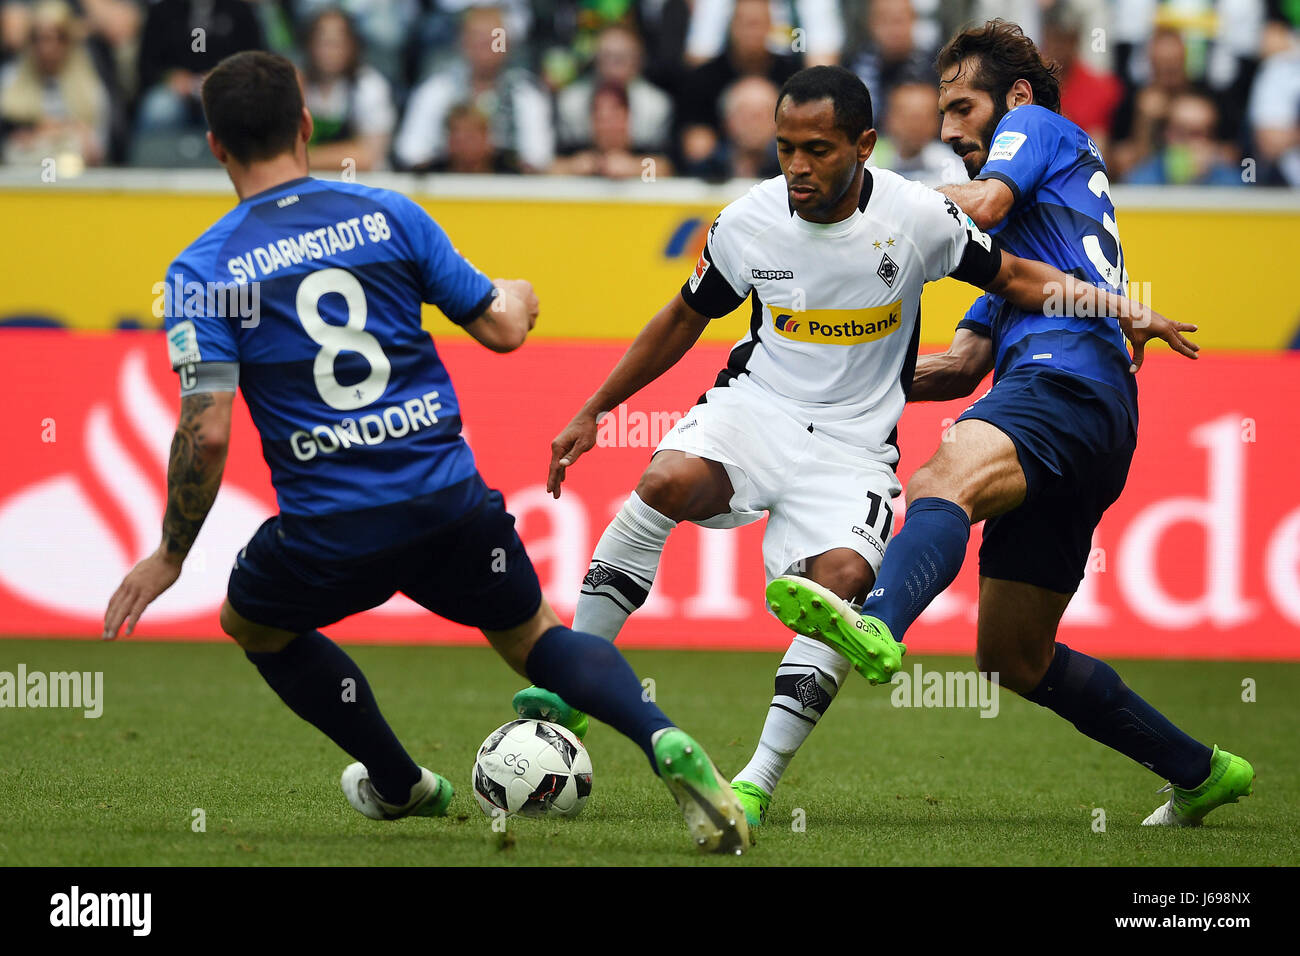 Moenchengladbach germany 20th may 2017 for Action darmstadt